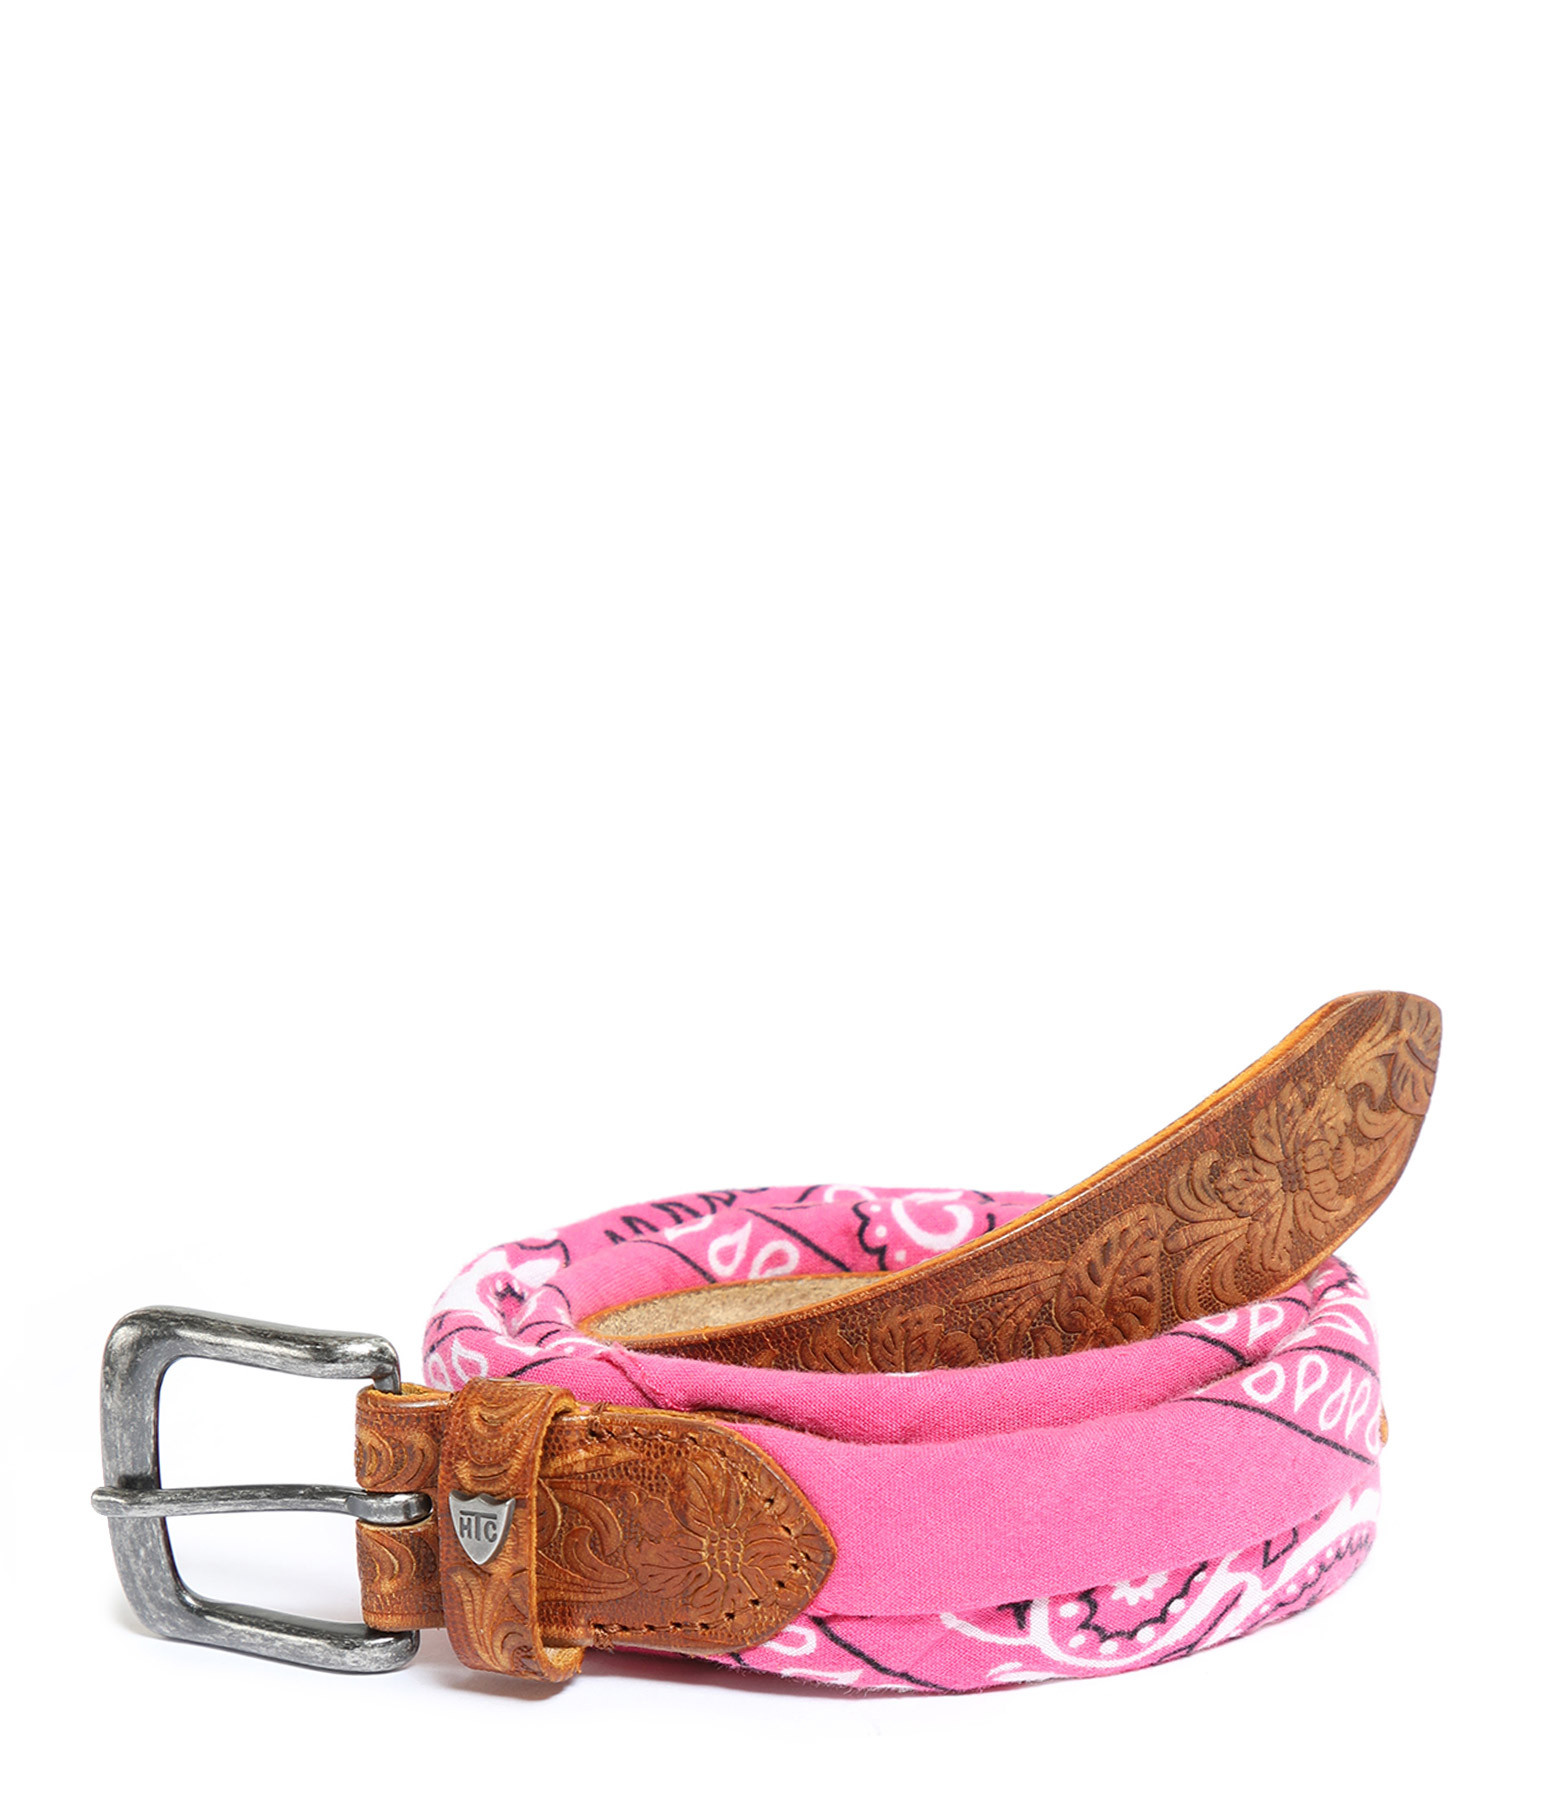 HTC LOS ANGELES - Ceinture Bandana Rose Fushia